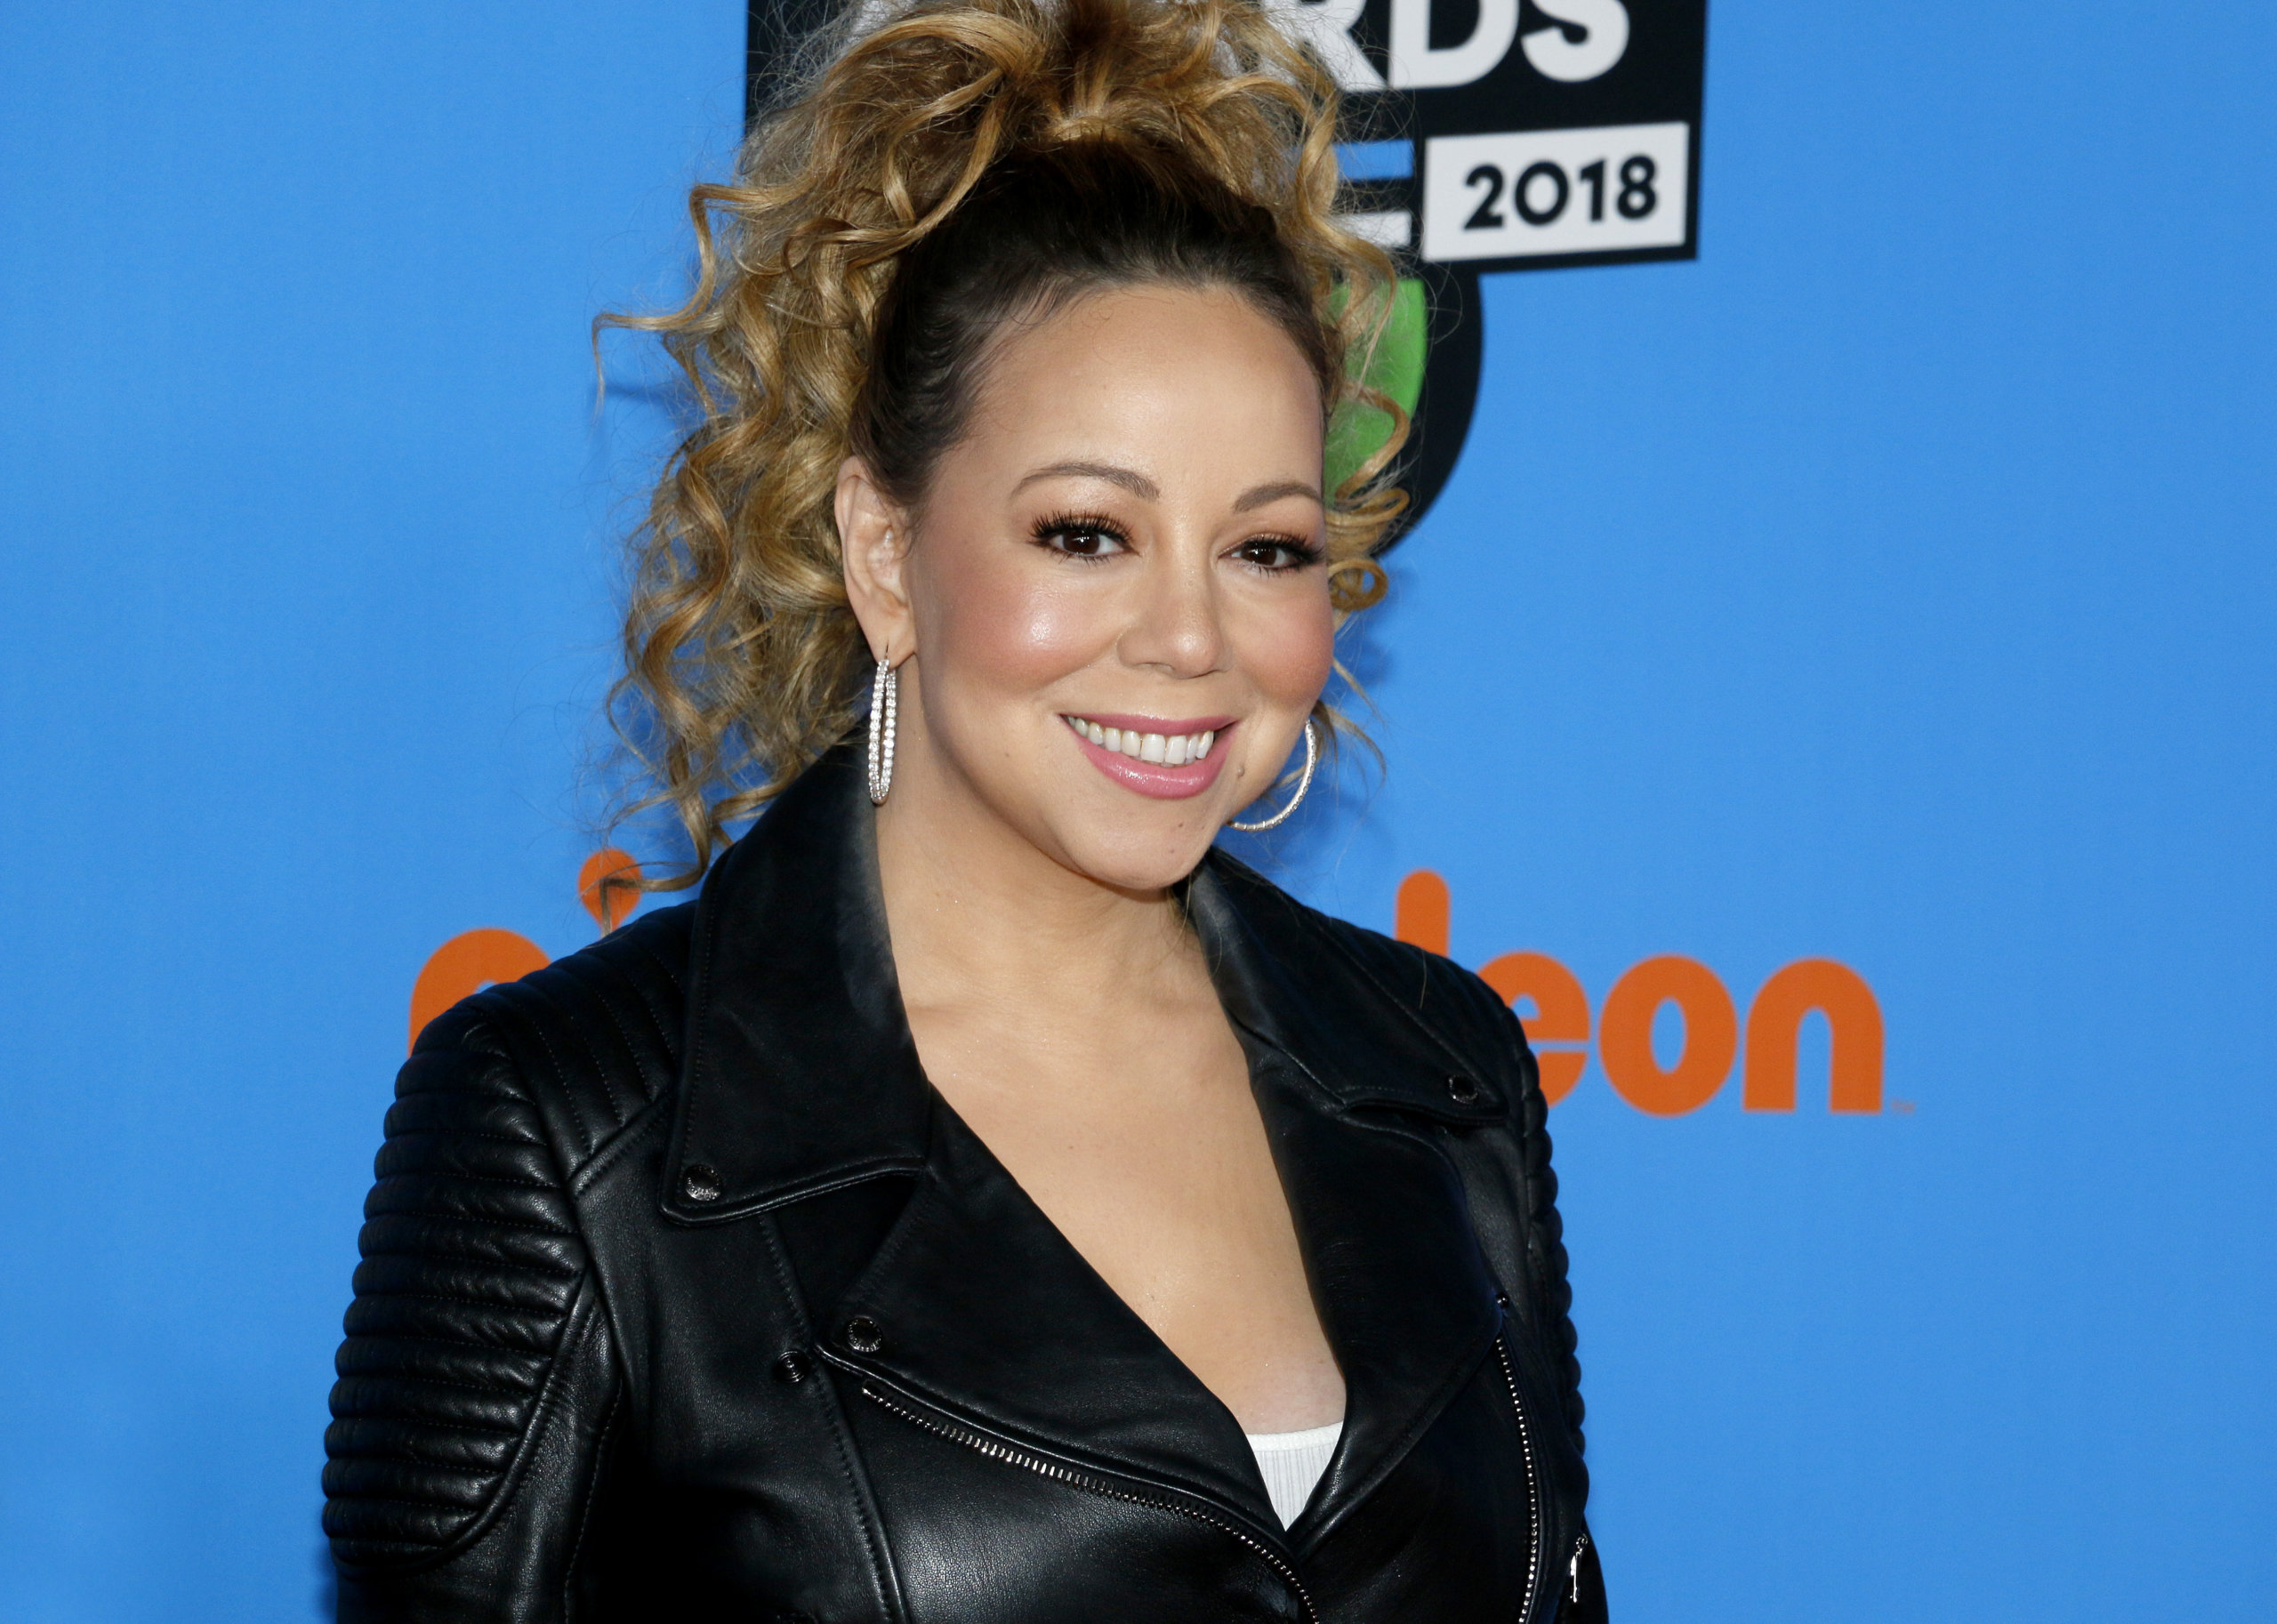 Mariah Carey at the Nickelodeon's 2018 Kids' Choice Awards